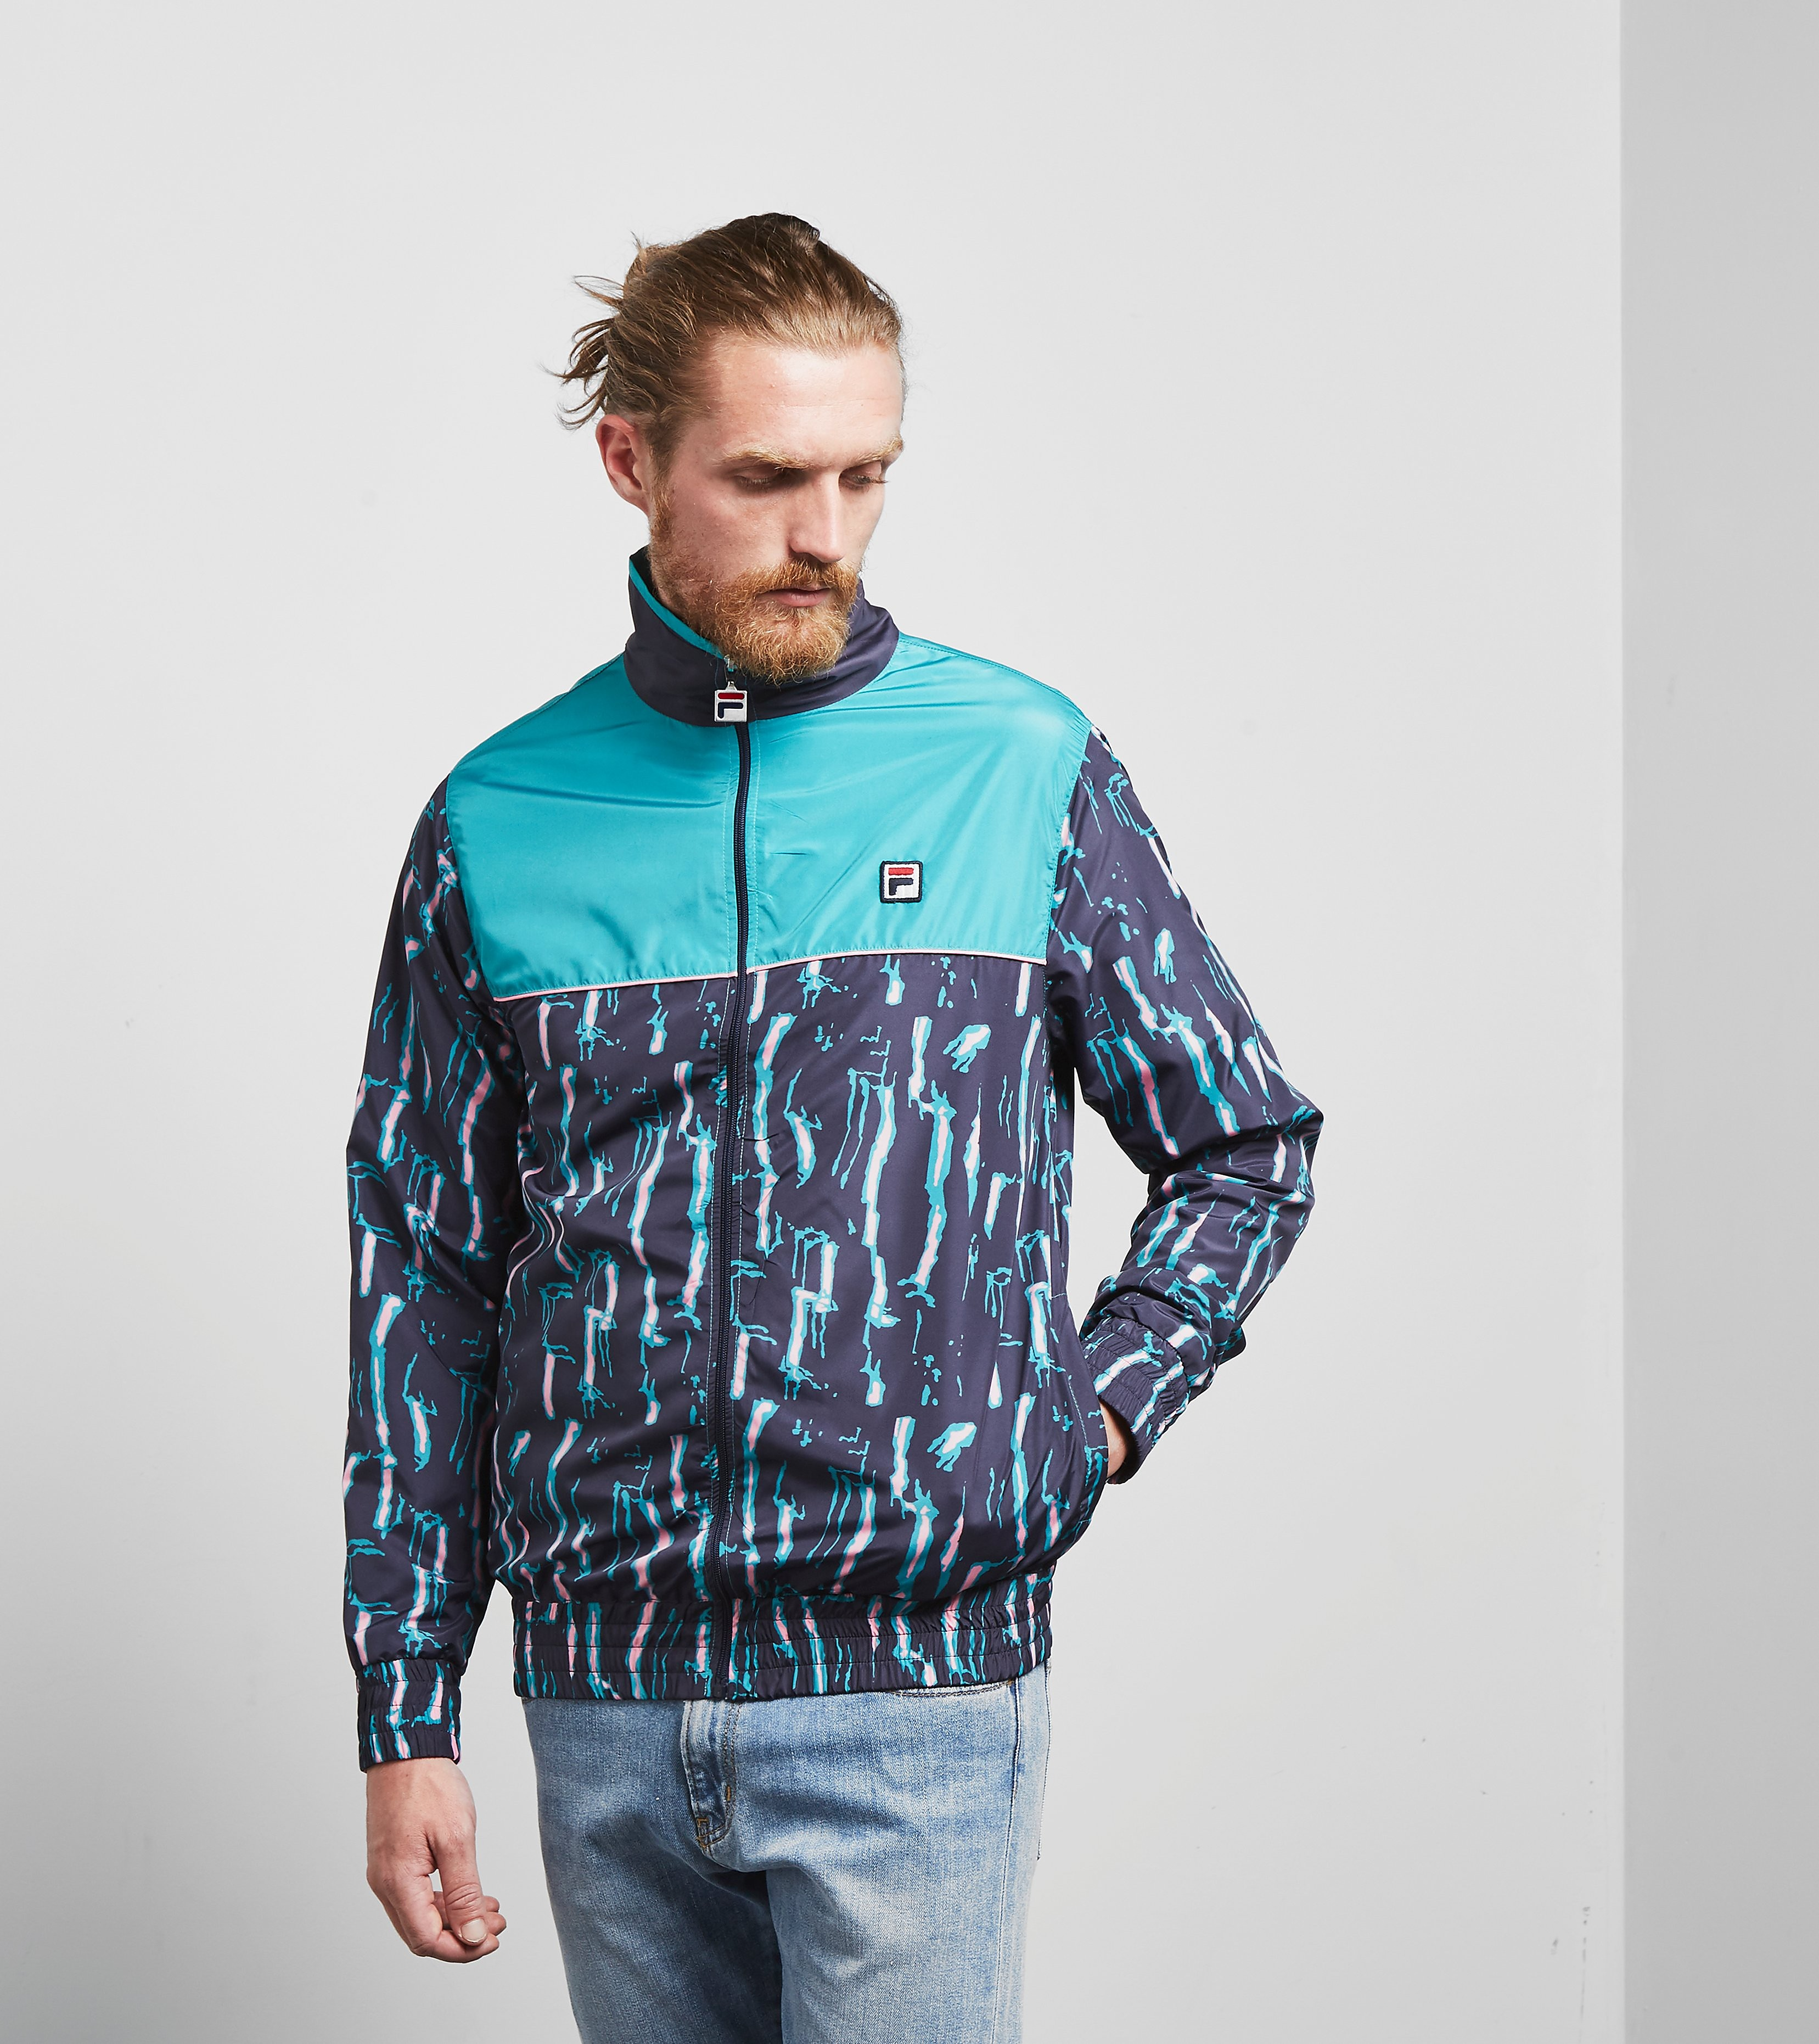 Fila Fisher Jacket - size? Exclusive